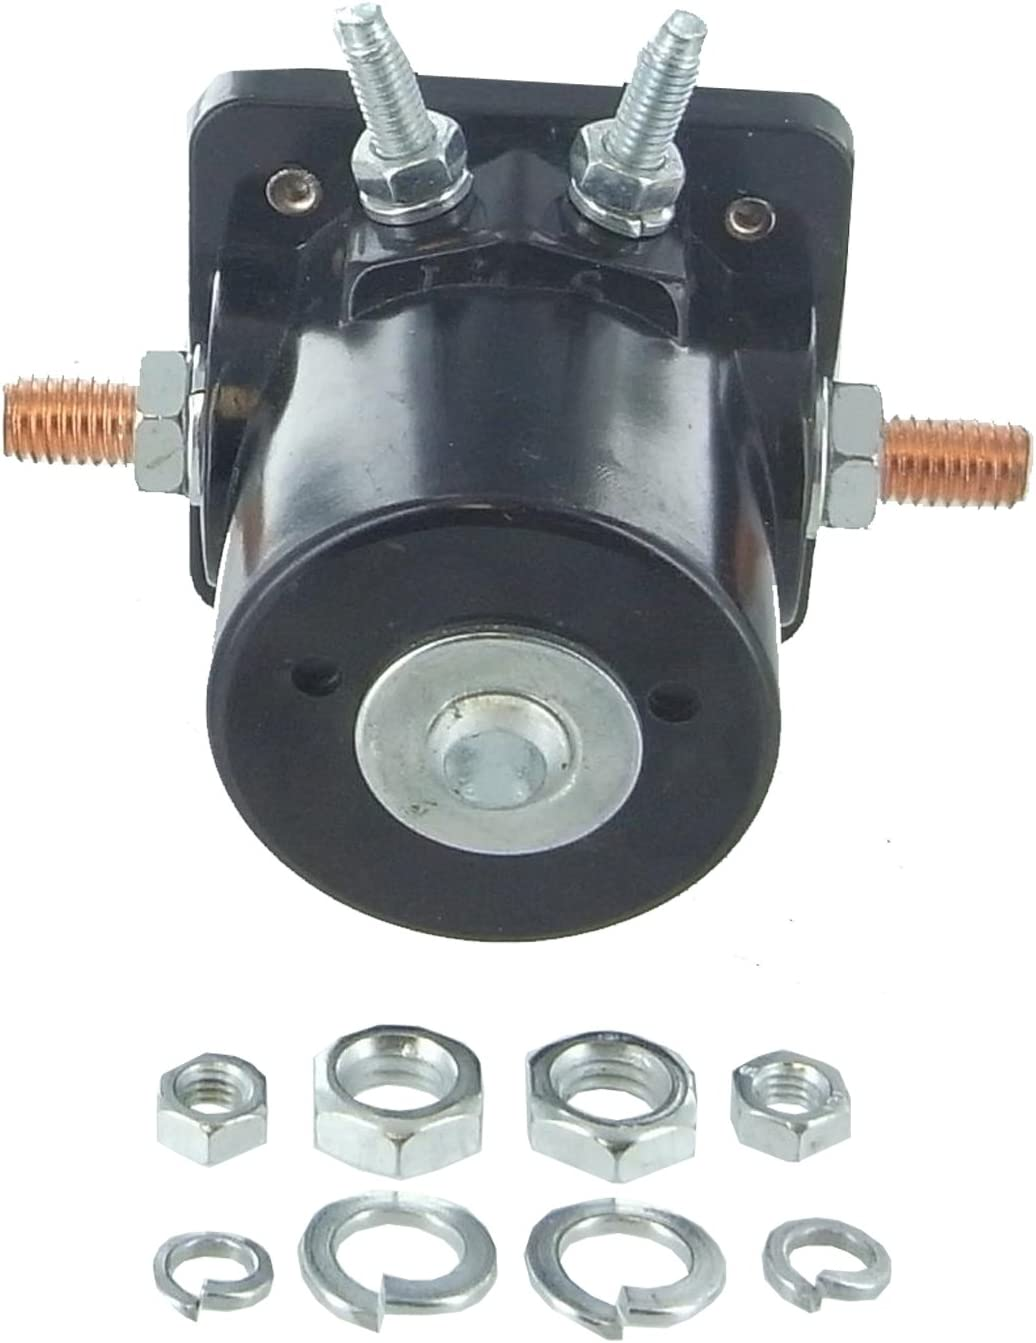 Starter Solenoid Replacement For Johnson, OMC, Evinrude Outboard Motor